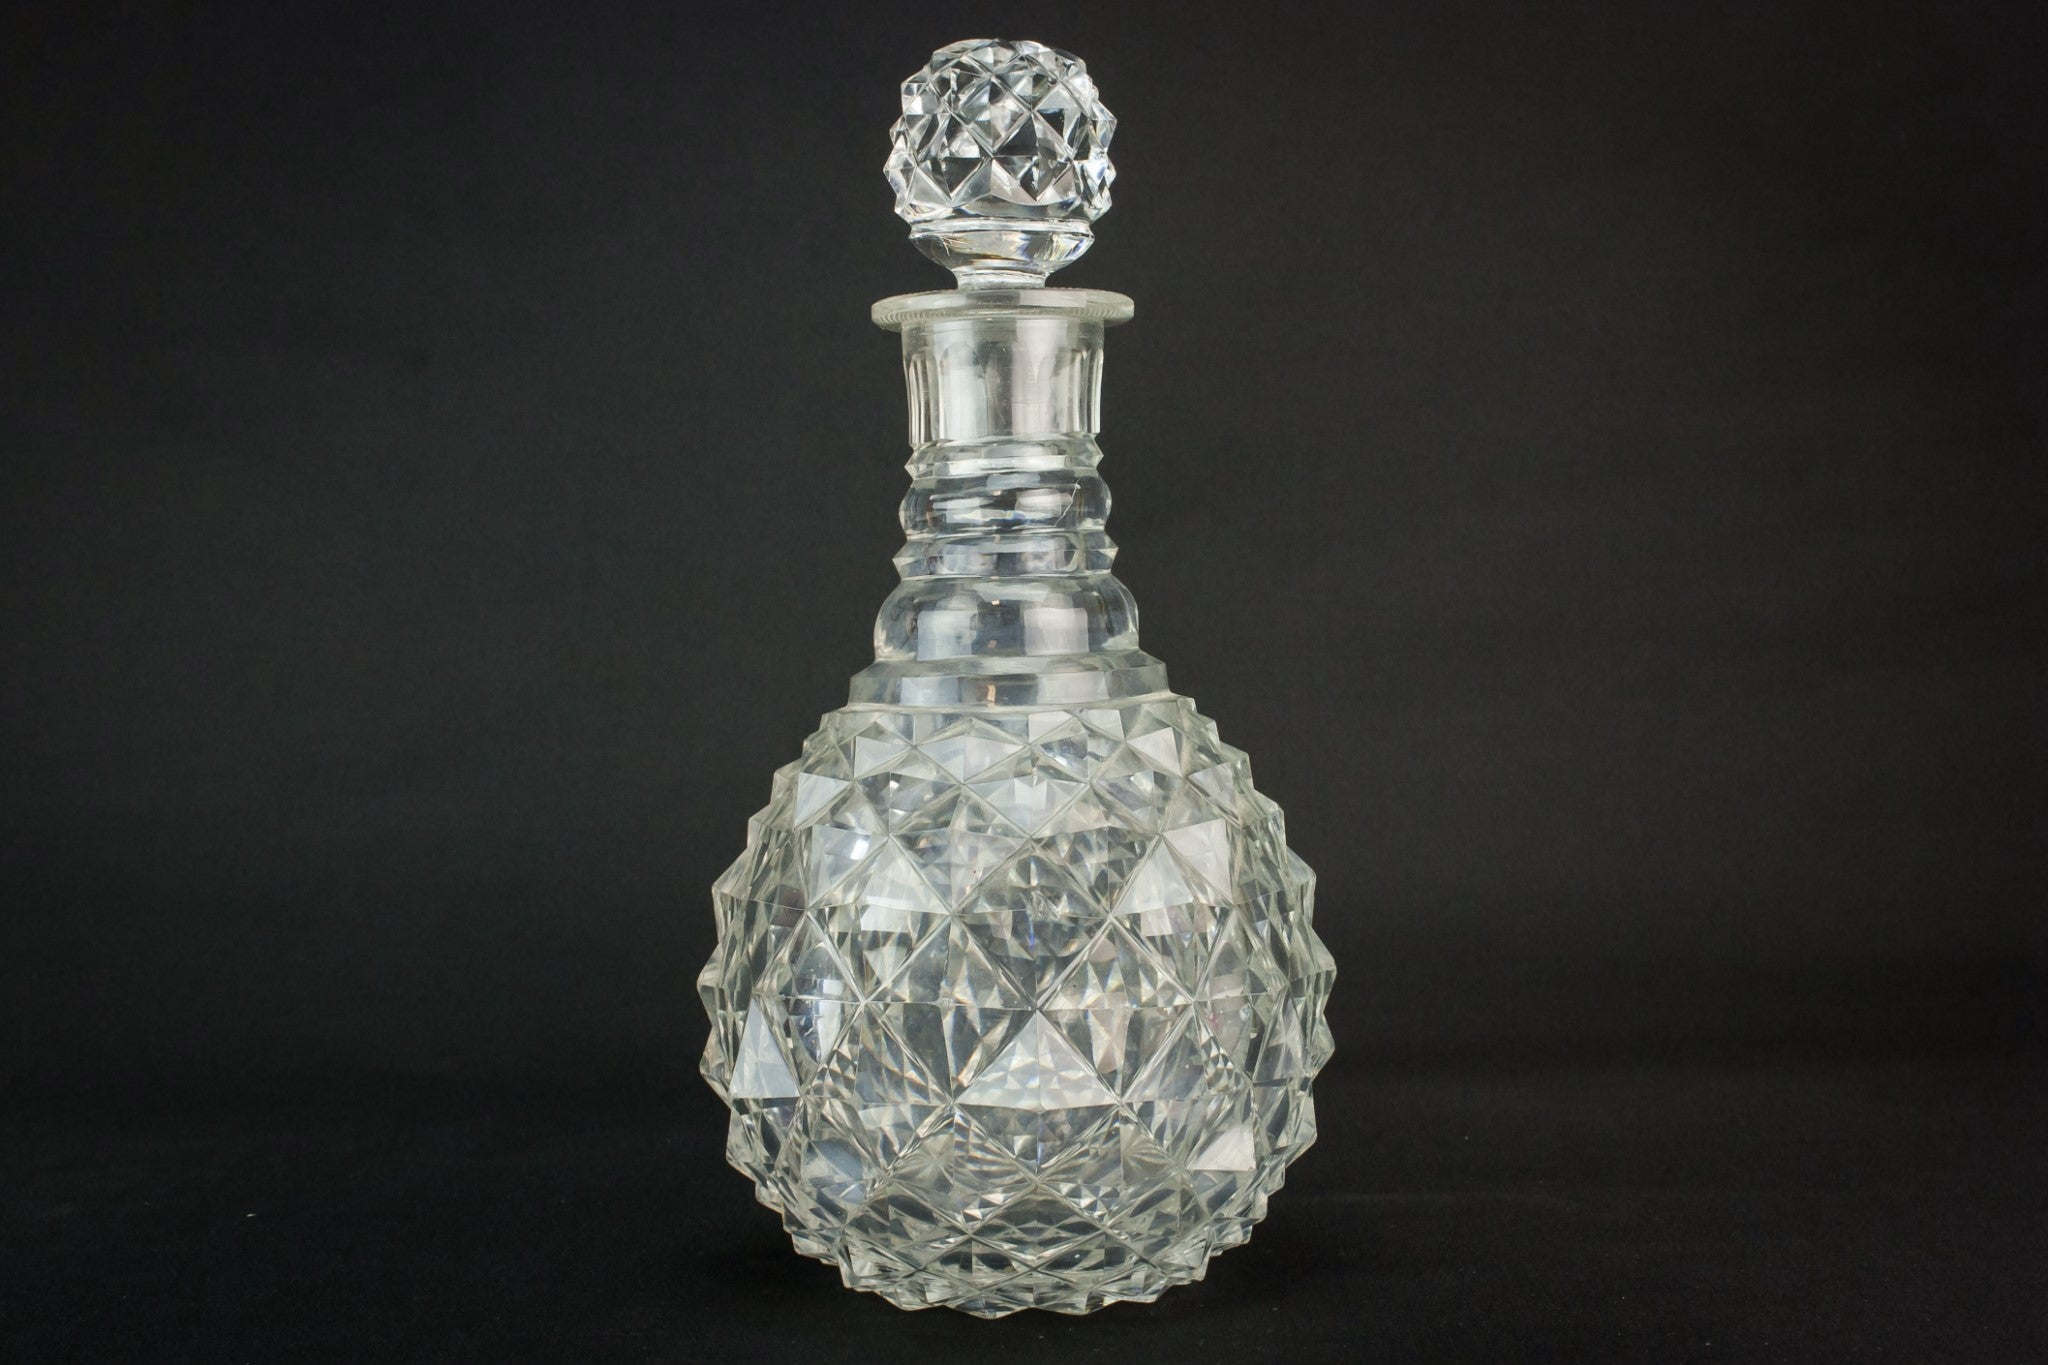 Cut glass whisky decanter